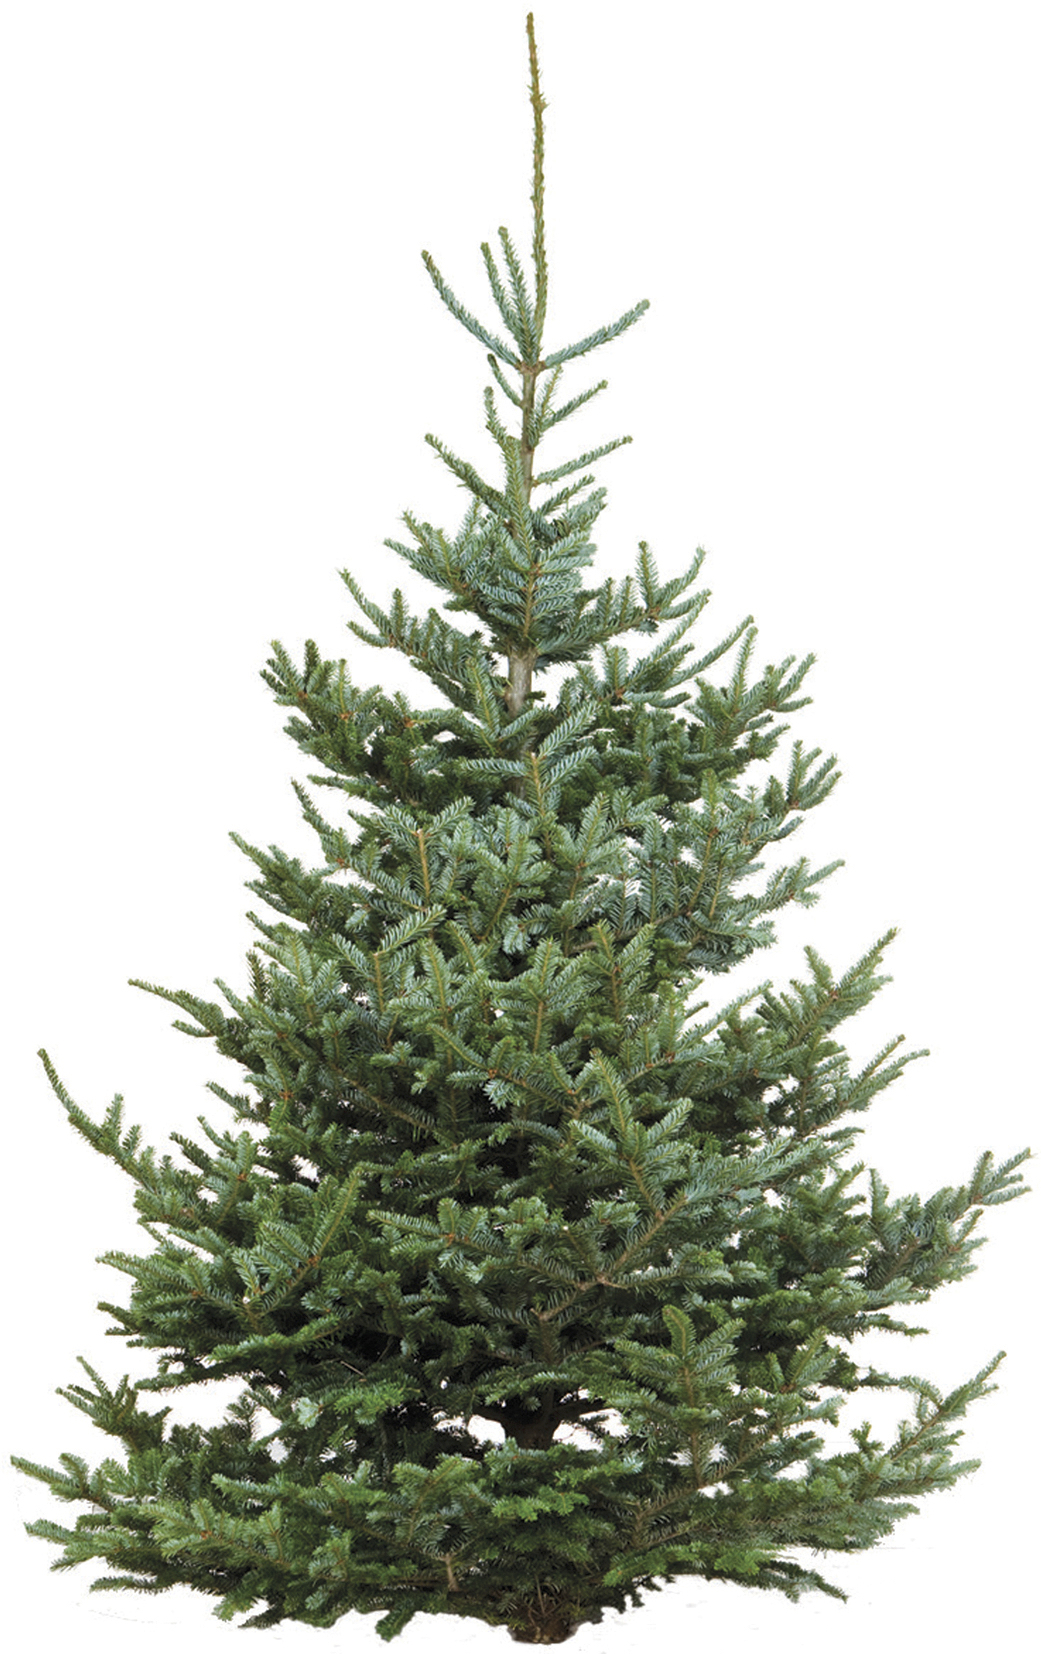 How To Select A Real Christmas Tree That Looks Lovely And Lasts All Season